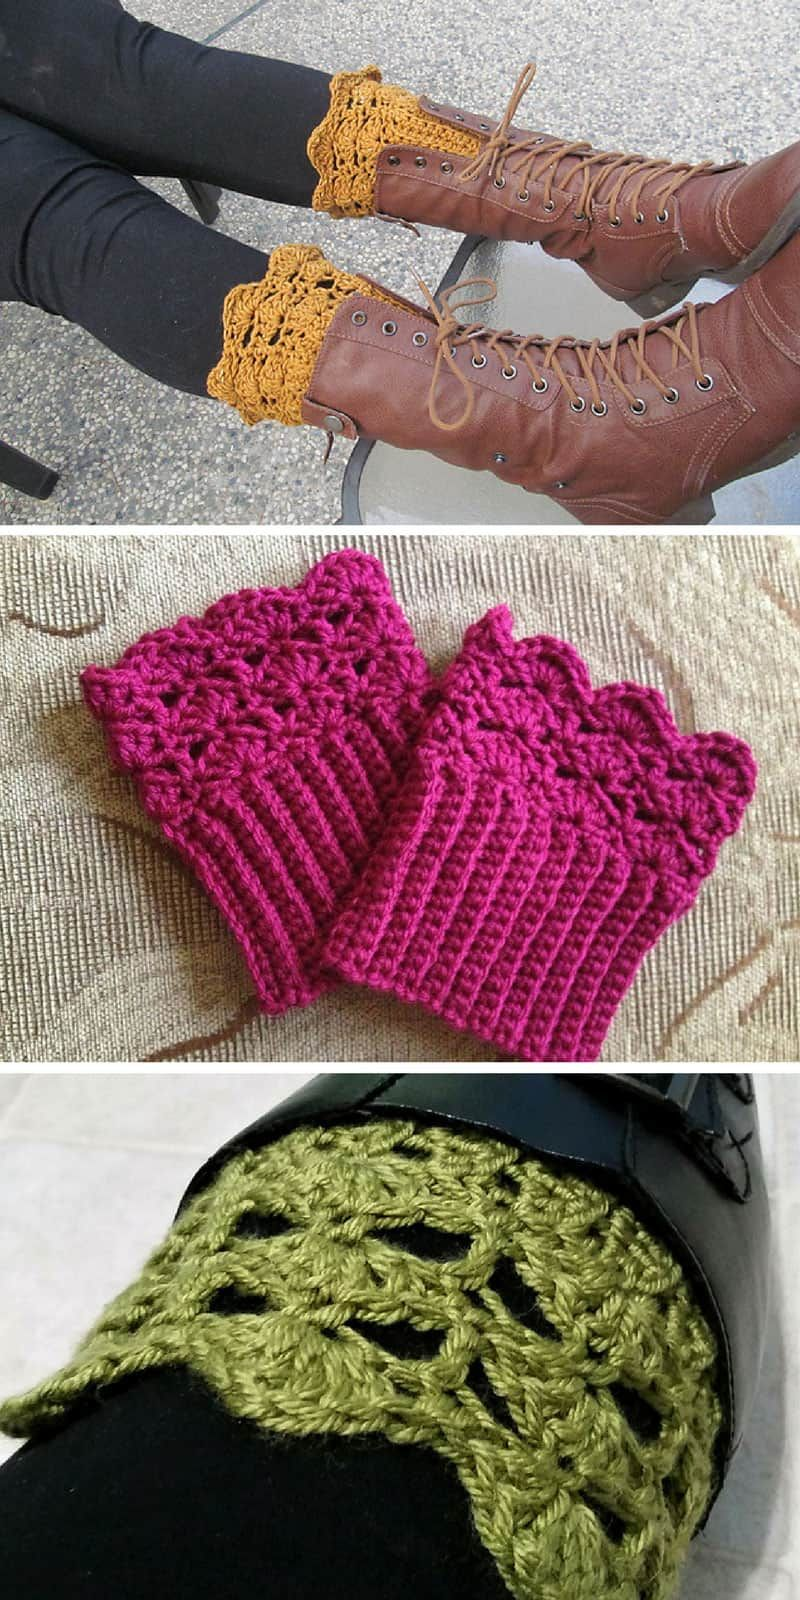 11 Stylish Boot Cuff Crochet Patterns to Add Some Feminine Flair to Your Winter Wardrobe!